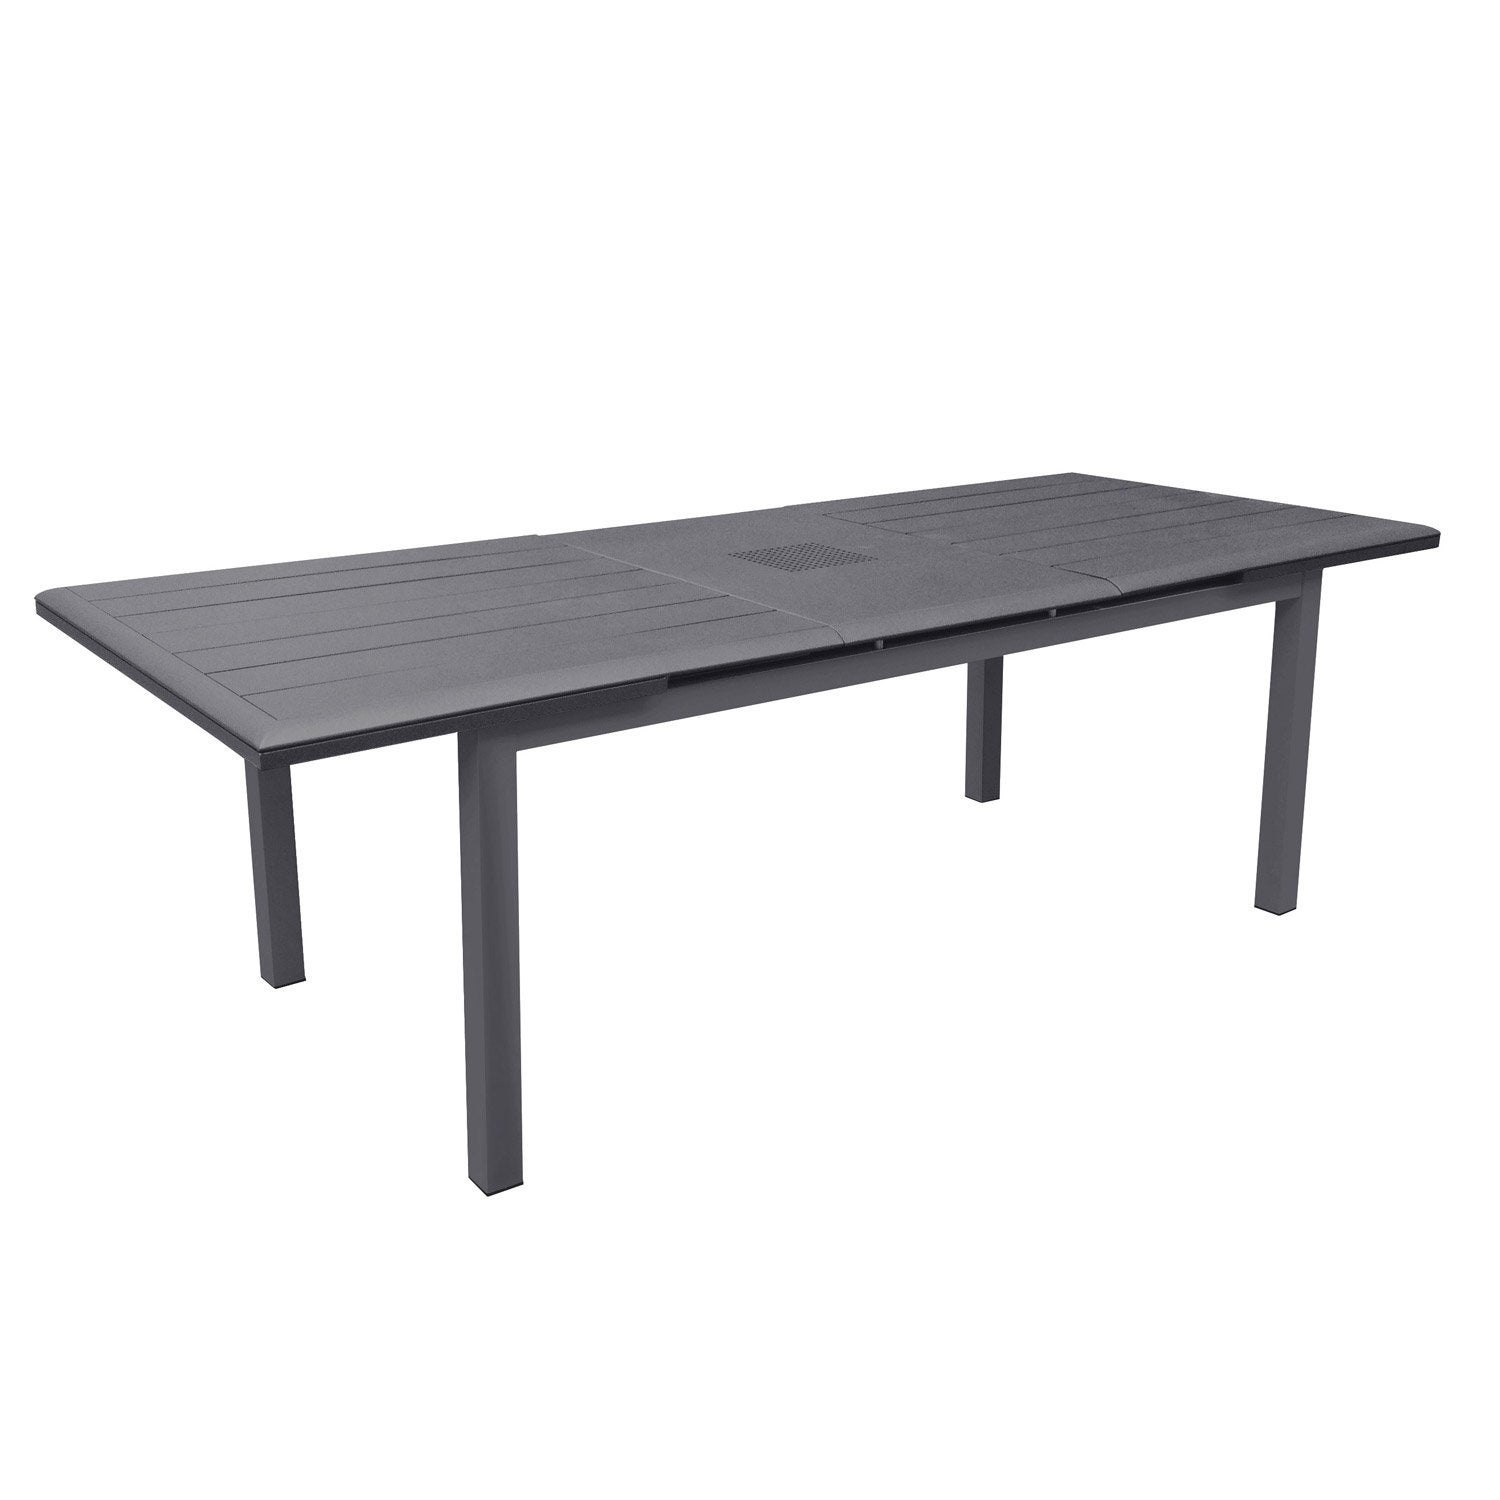 Table De Jardin Louisiane Rectangulaire Gris 6 8 Personnes Leroy Merlin